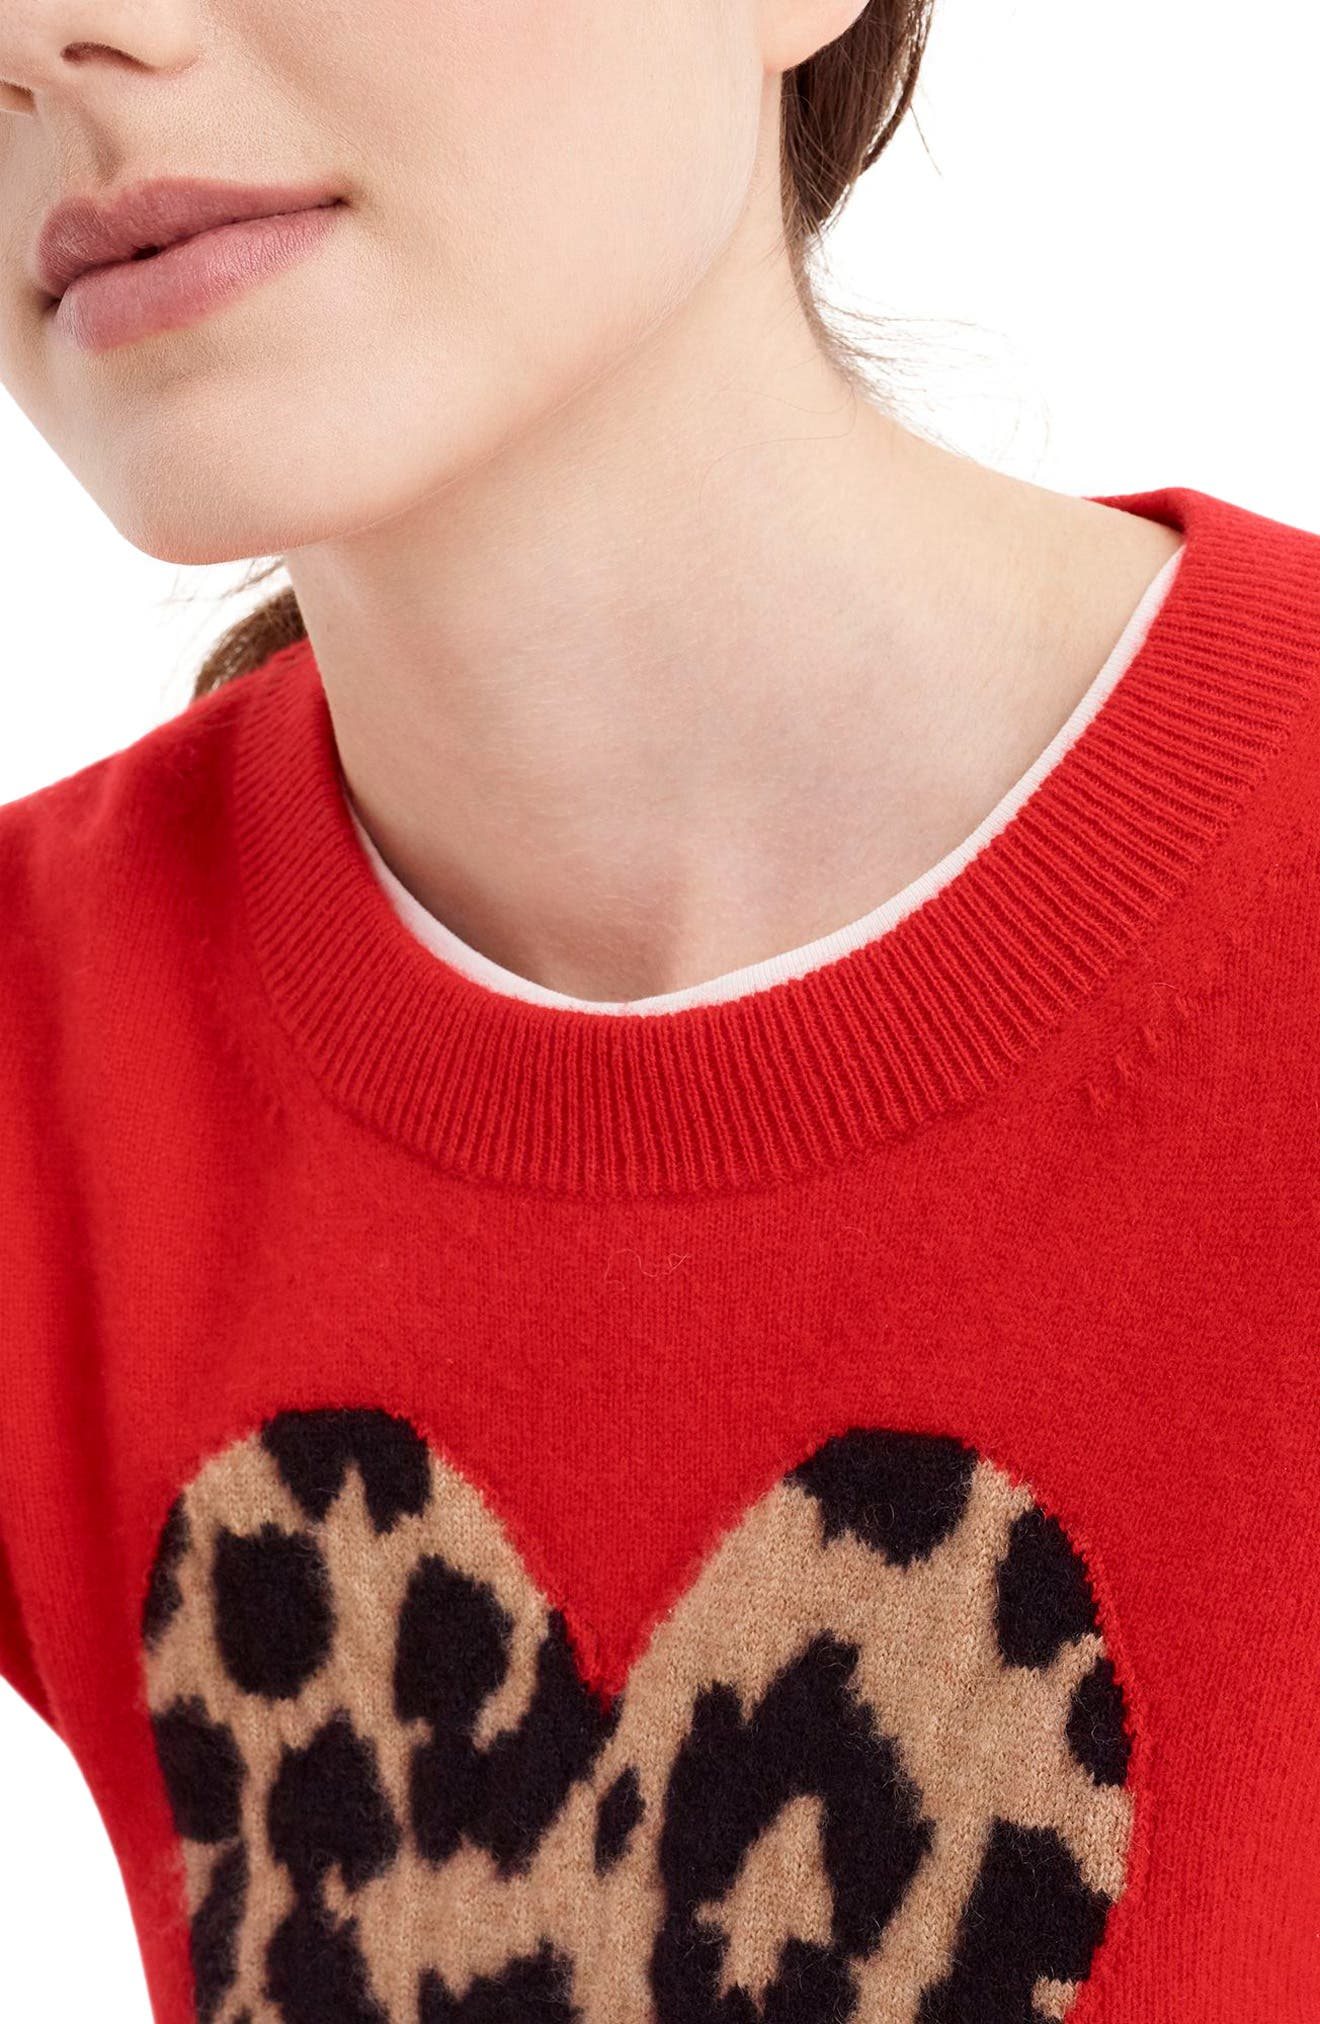 Leopard Heart Everyday Cashmere Sweater,                             Alternate thumbnail 5, color,                             600